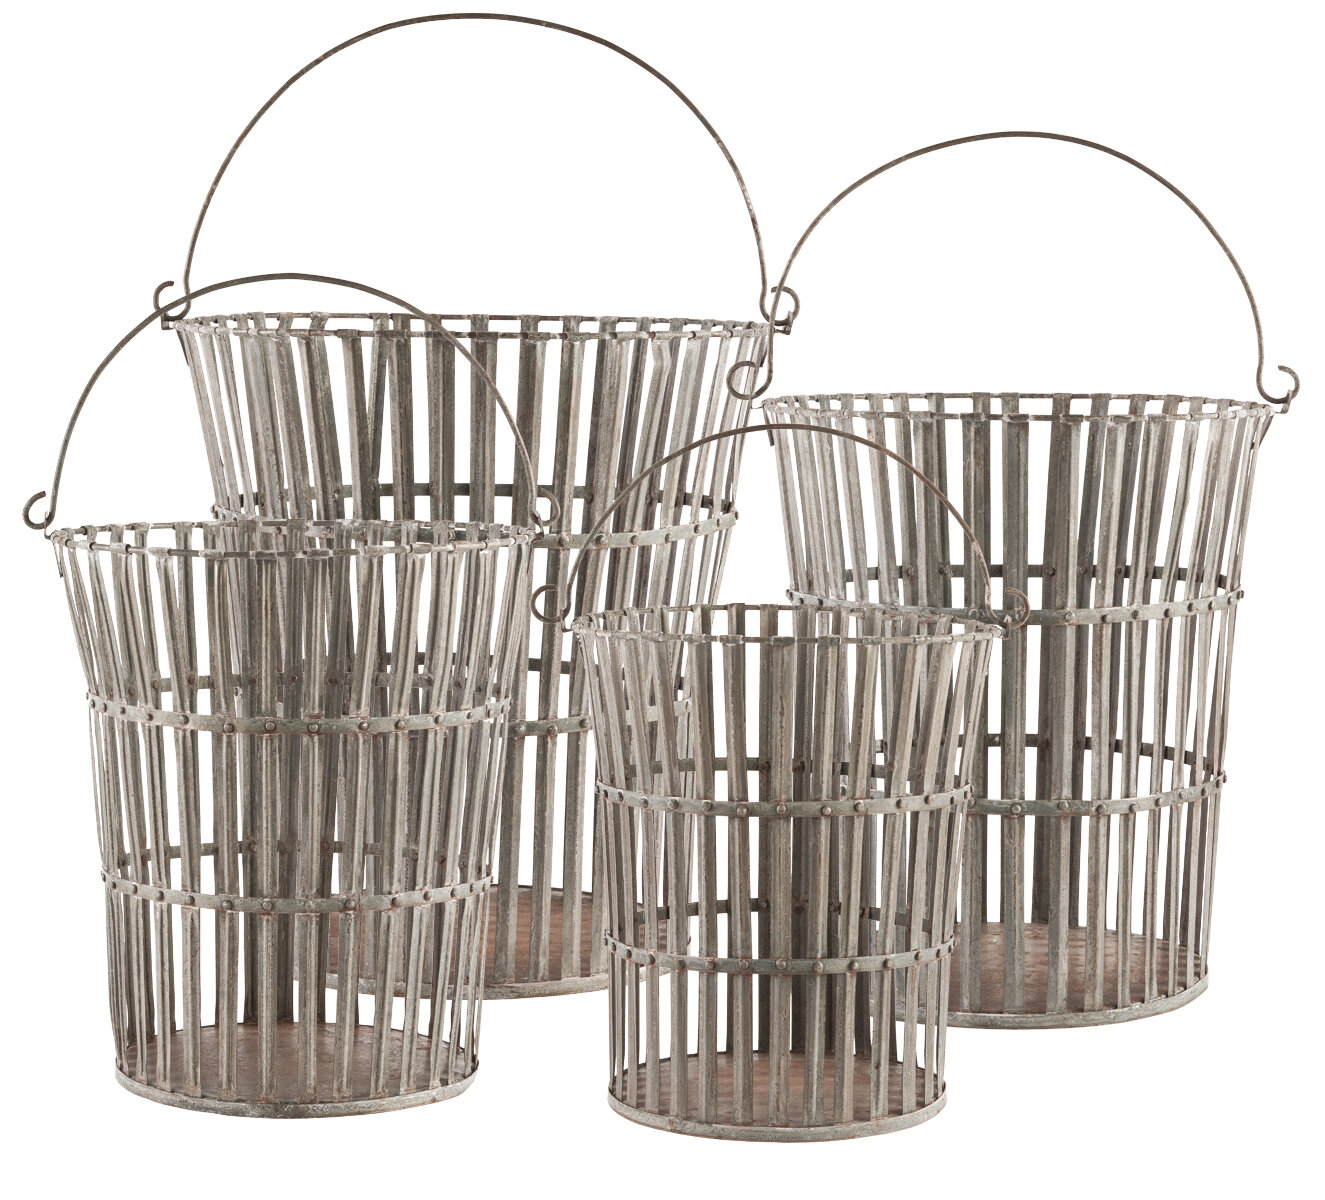 Tall Riveted Metal/Wire 4 Piece Basket Set By Aidan Gray